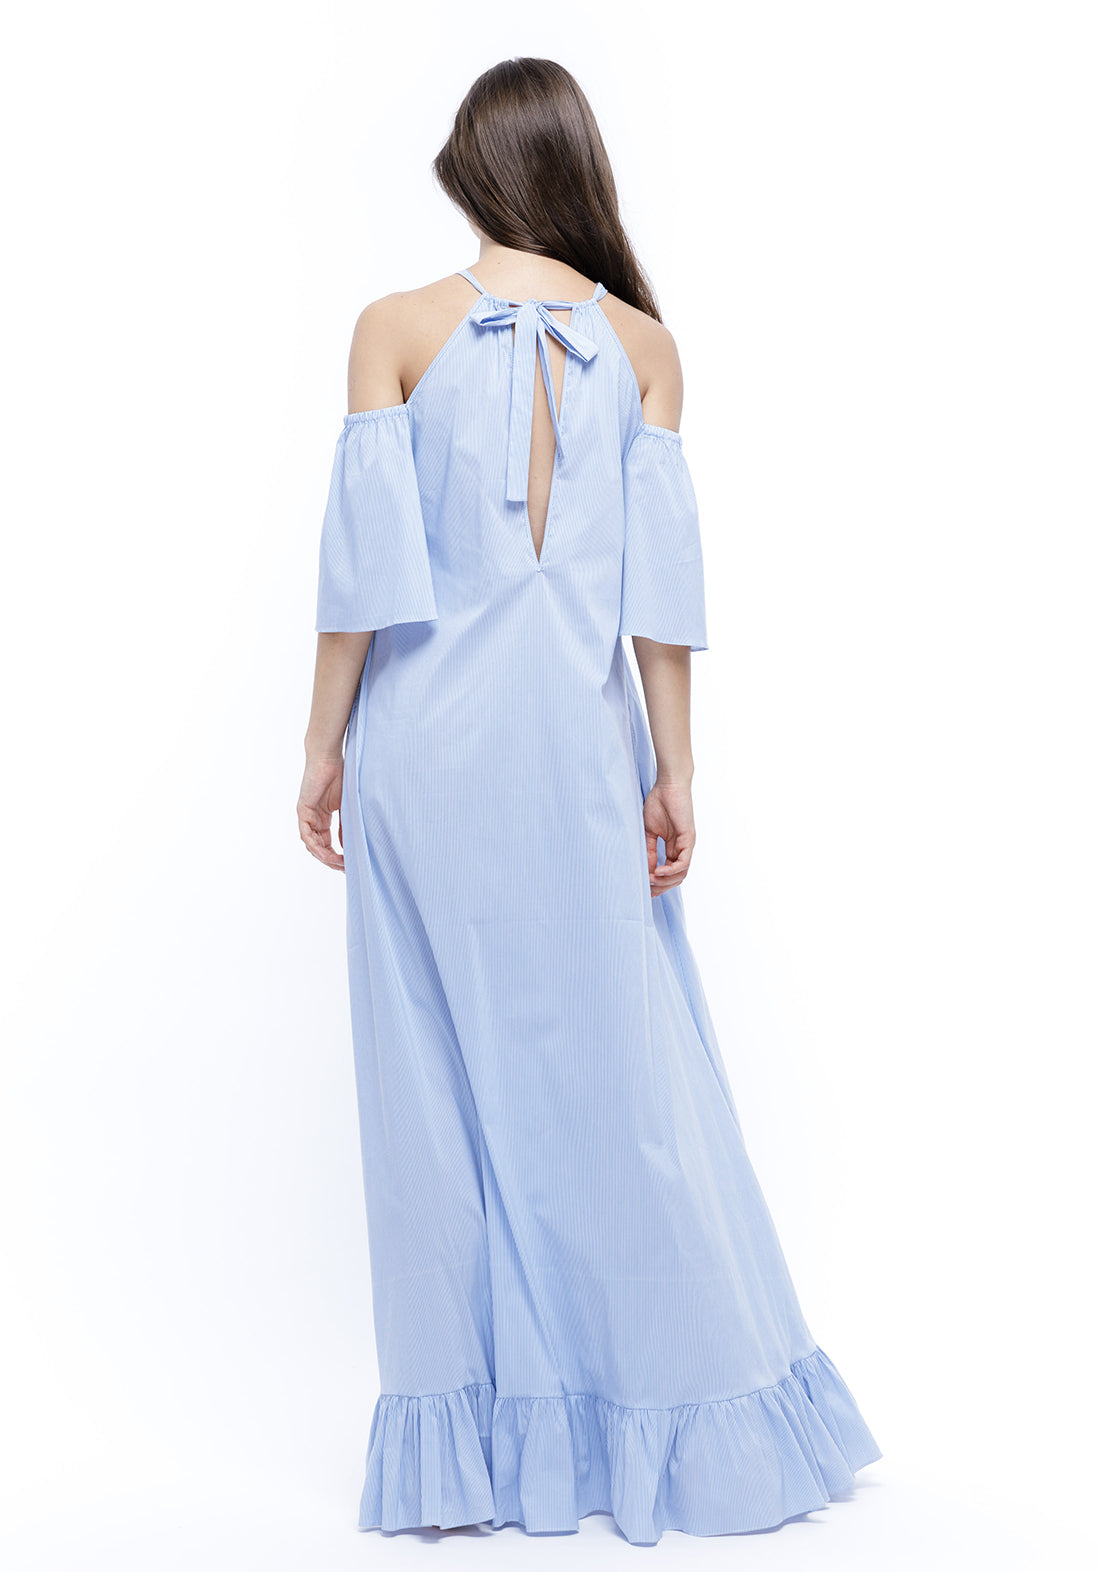 The Hamptons Long Dress in Vanilla/Aqua